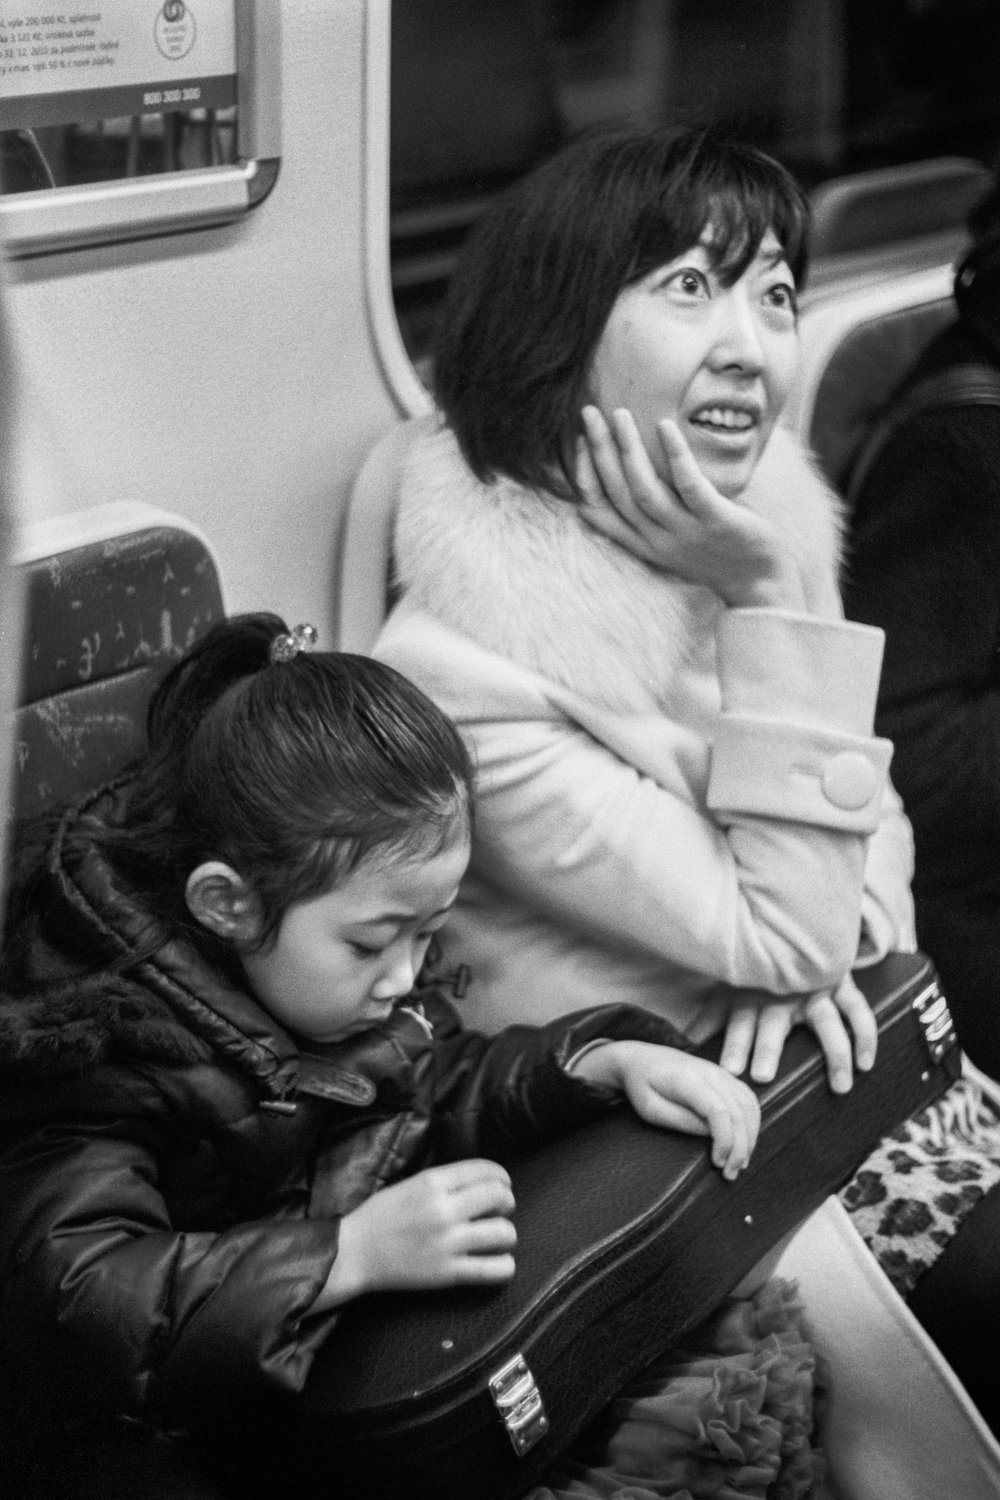 A mother and daughter on the metro, Prague, Czech Republic, 2015.